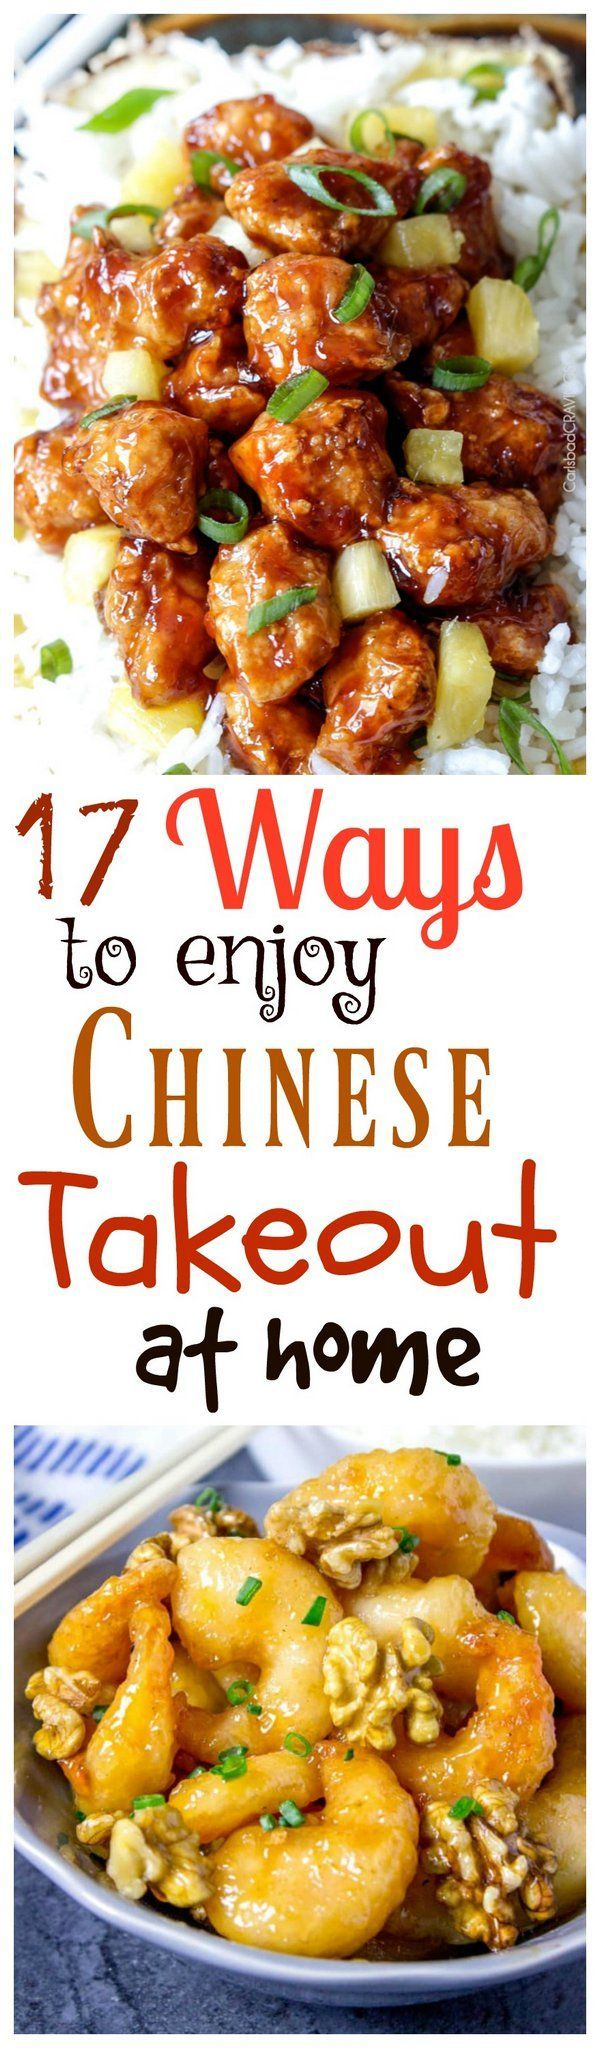 17 Ways to ENJOY CHINESE Takeout at Home. Homemade is always better!!